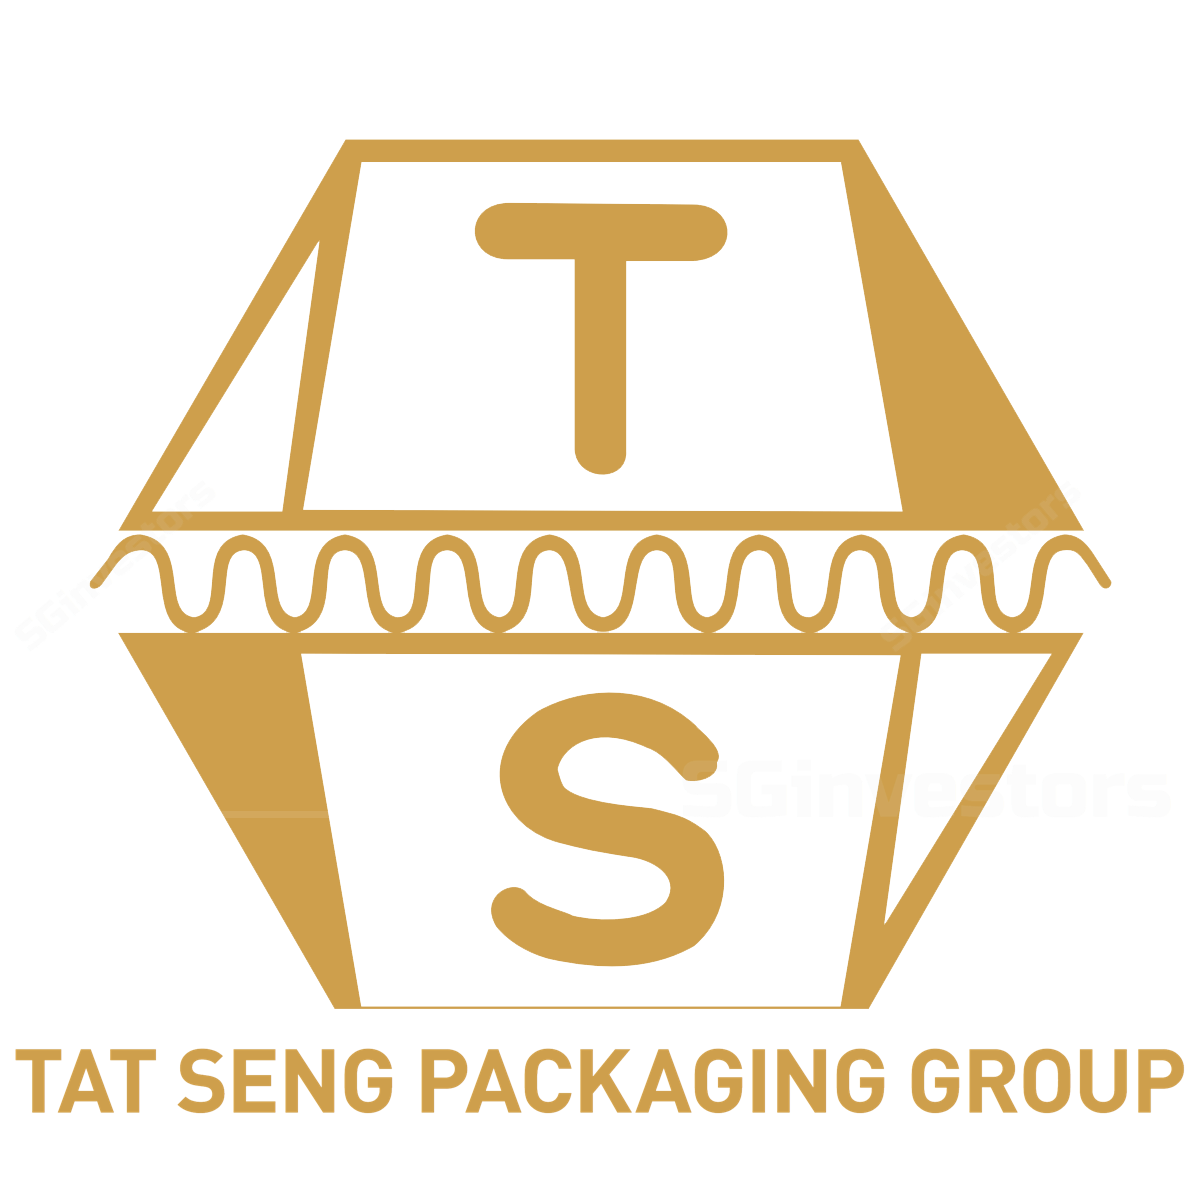 Tat Seng Packaging Group Ltd - Phillip Securities 2017-03-09: Proxy to China's manufacturing and consumer sectors